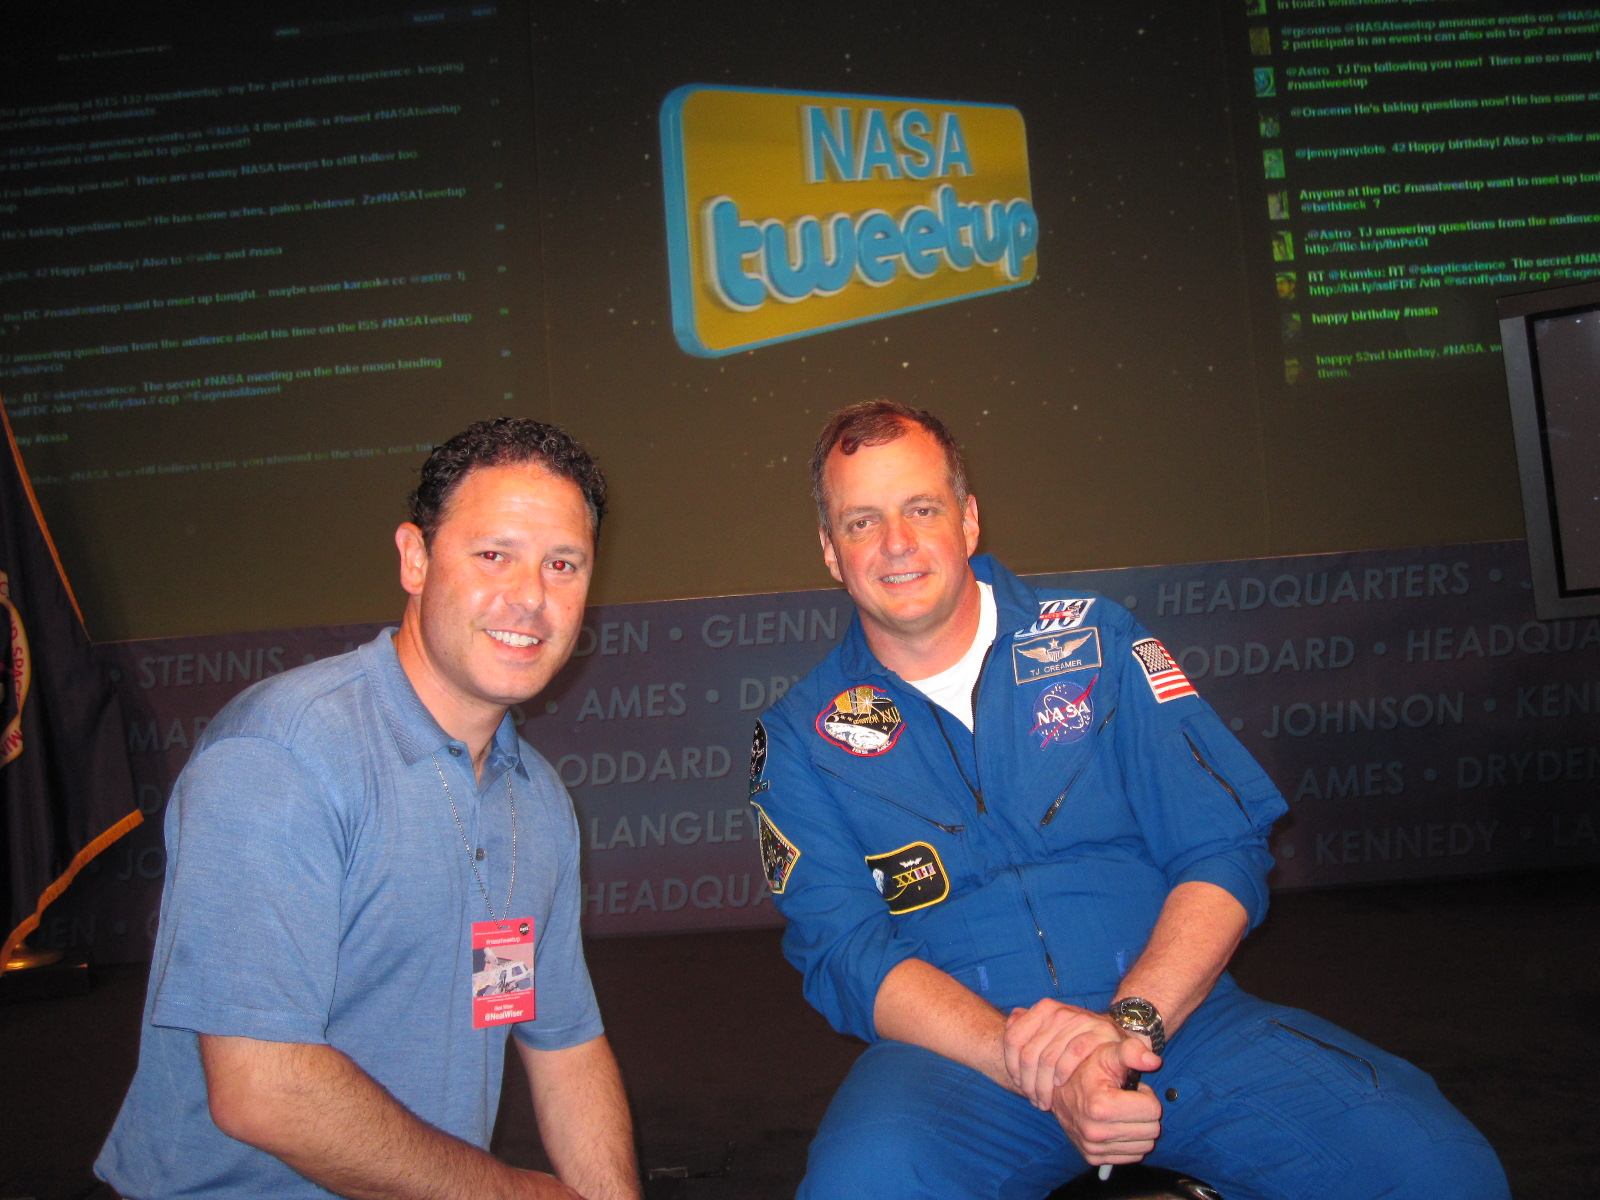 Neal and Astronaut TJ Creamer